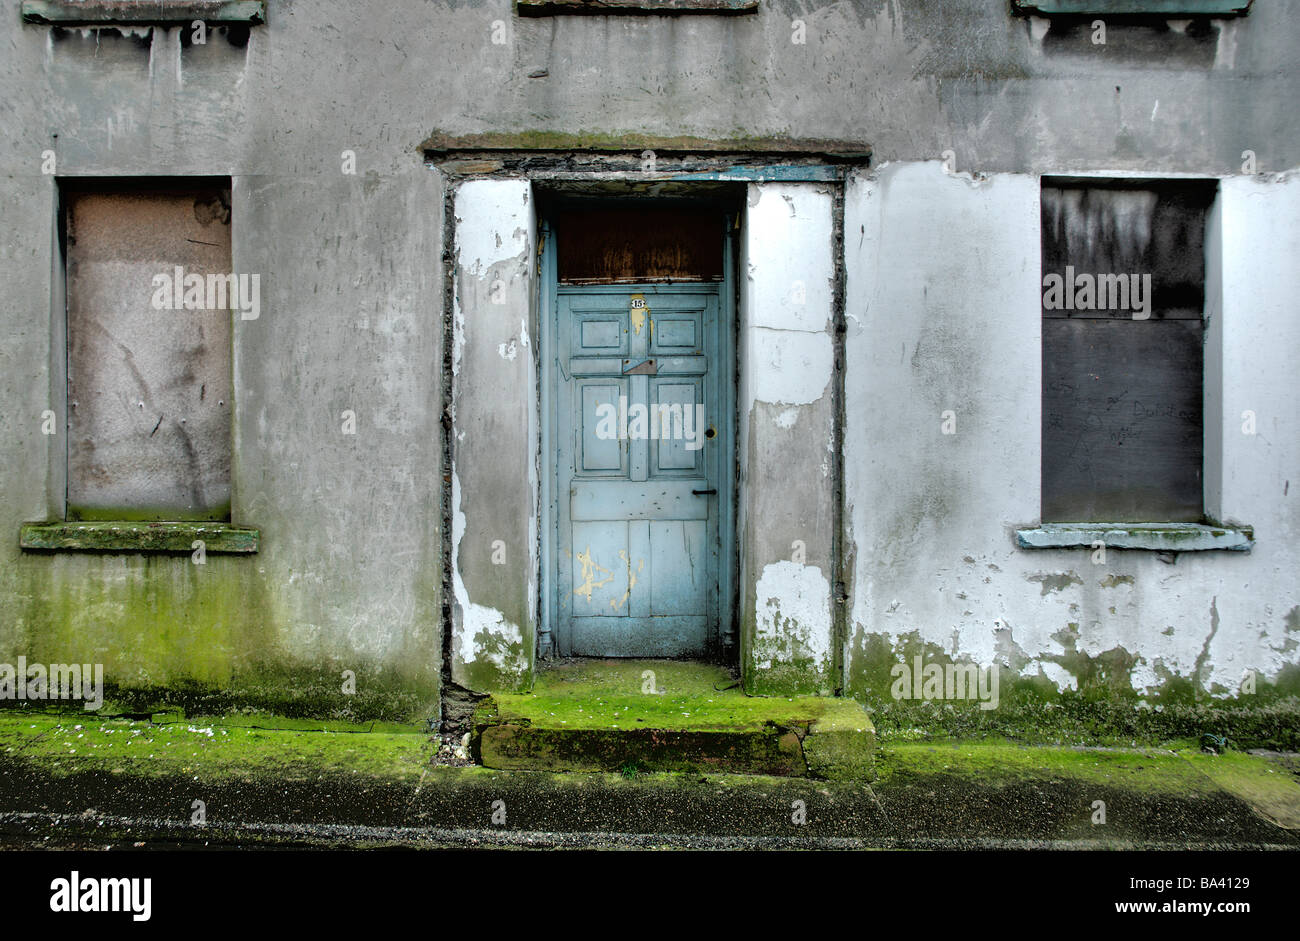 Derelict house with moss growing on pavement - Stock Image